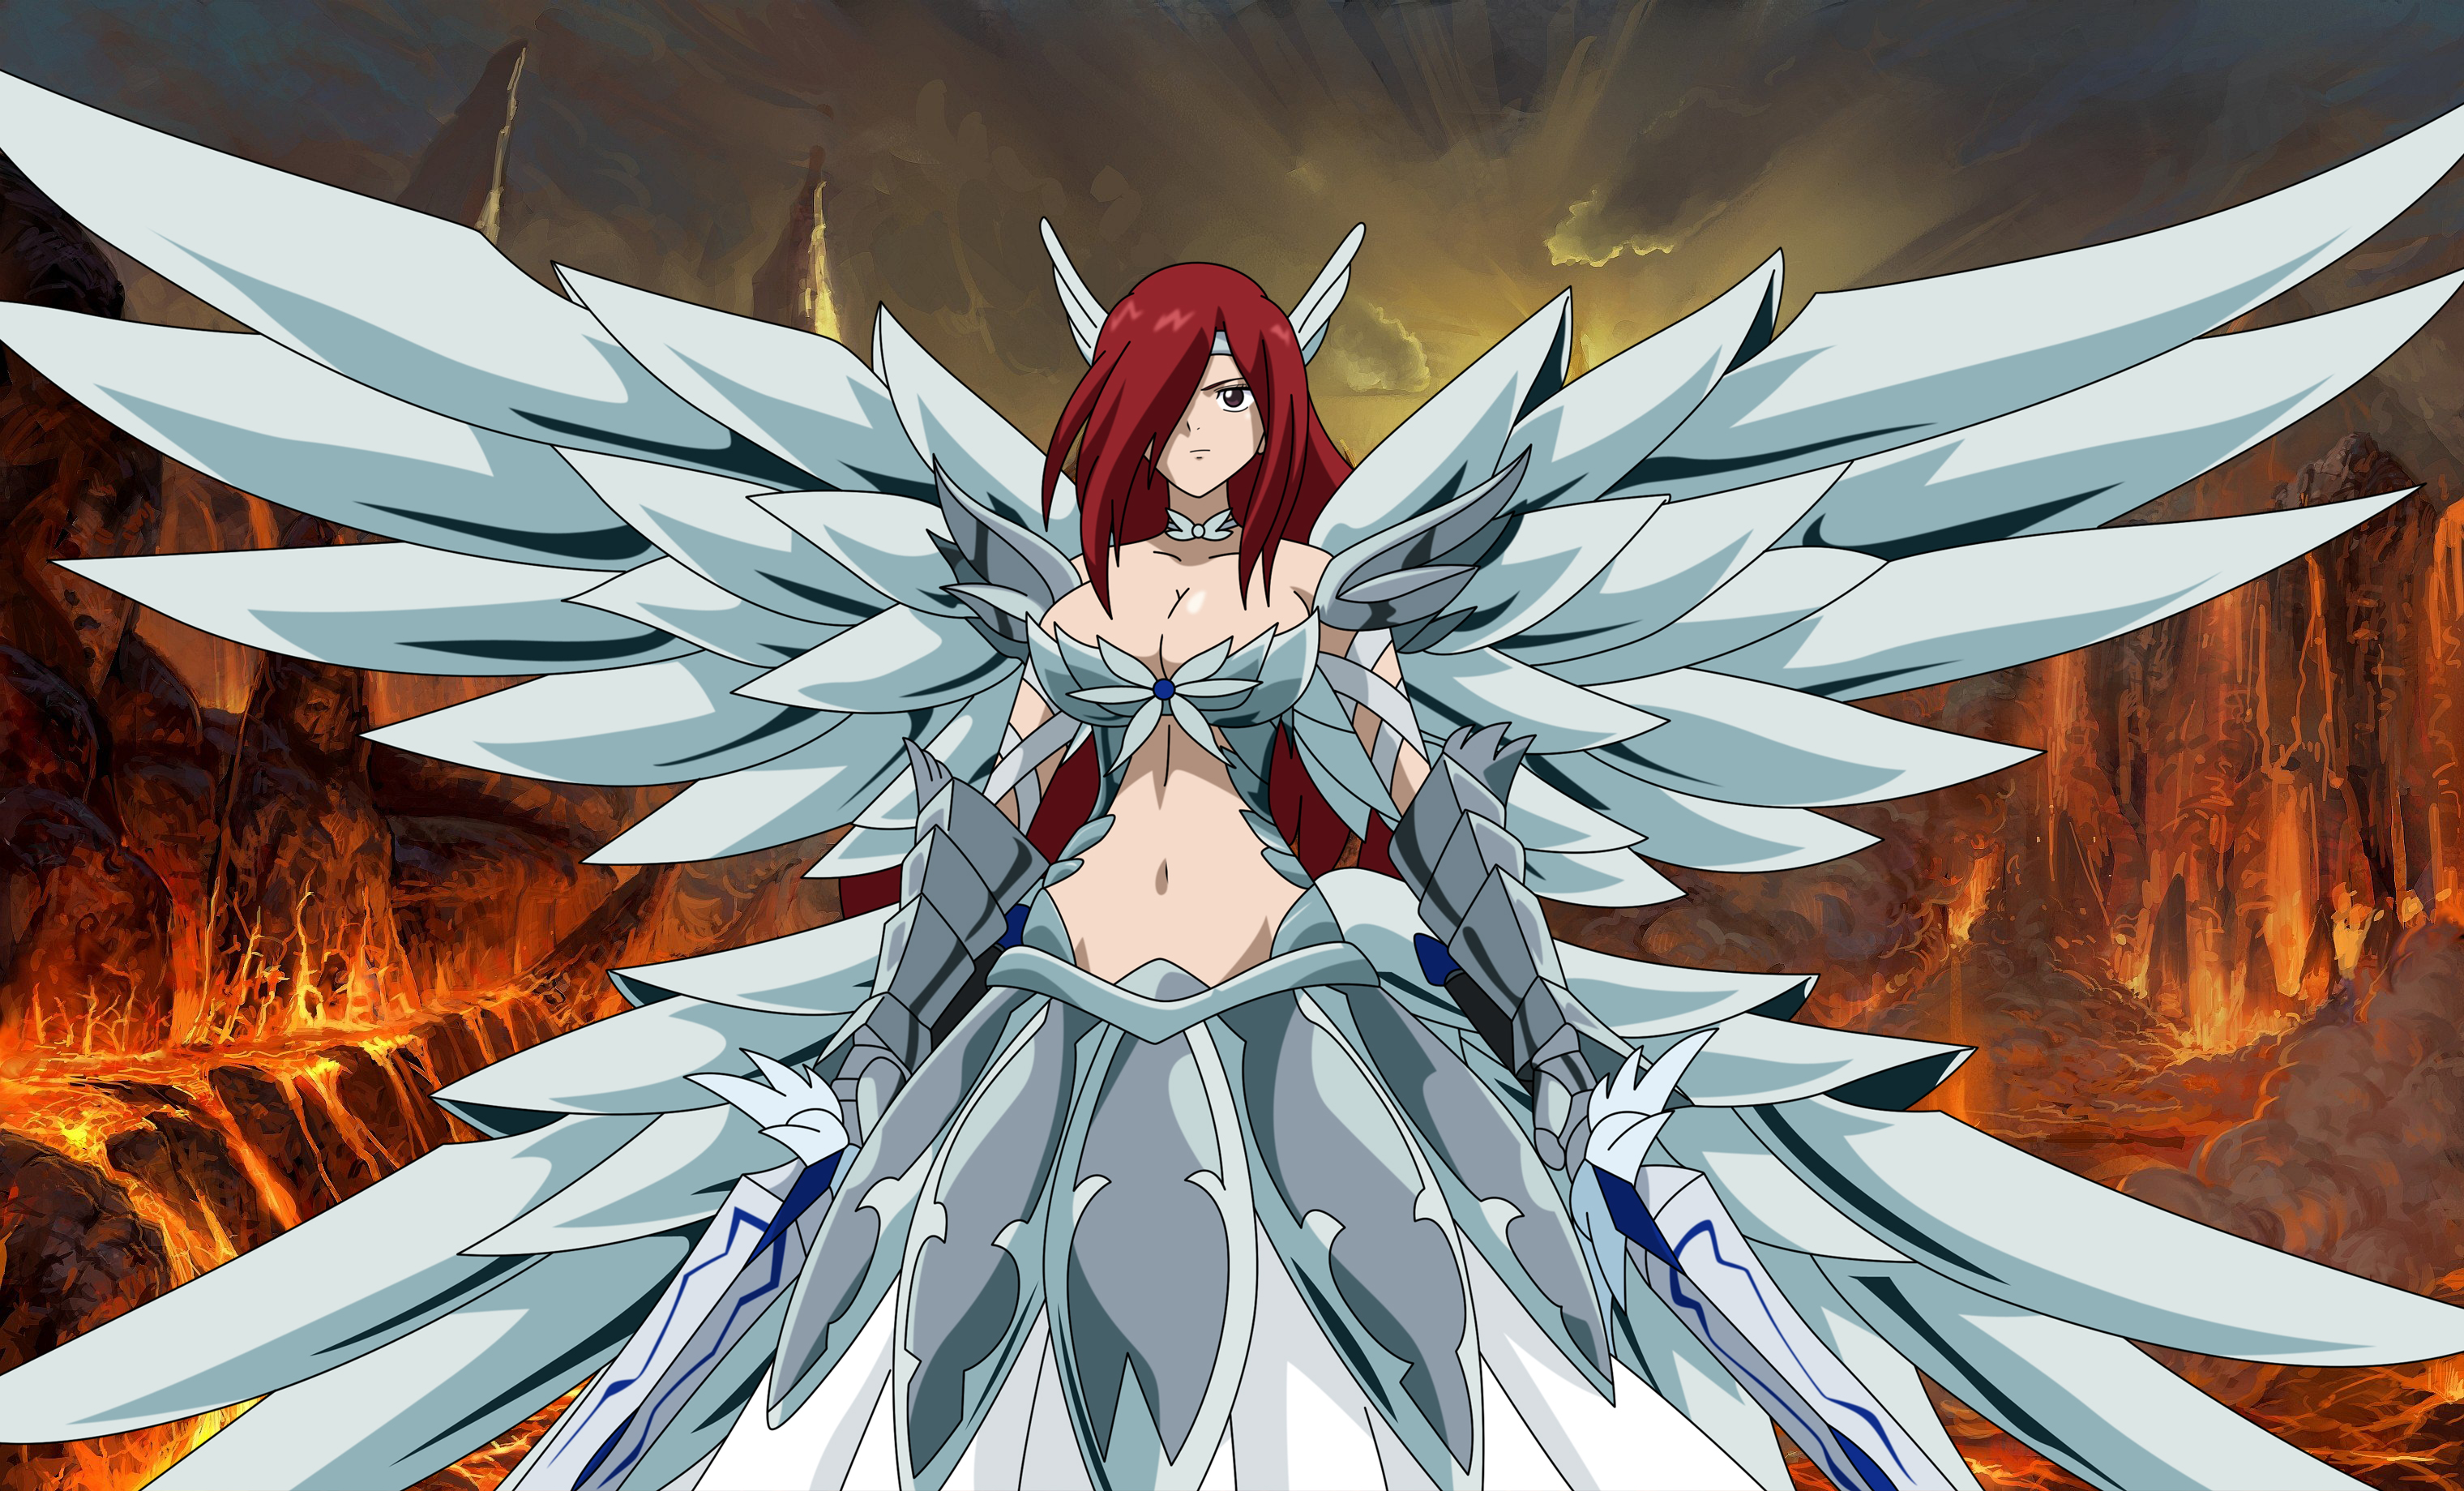 Fairy Tail Wallpaper Anime Manga 5951 Wallpaper Cool Walldiskpaper 3040x1839